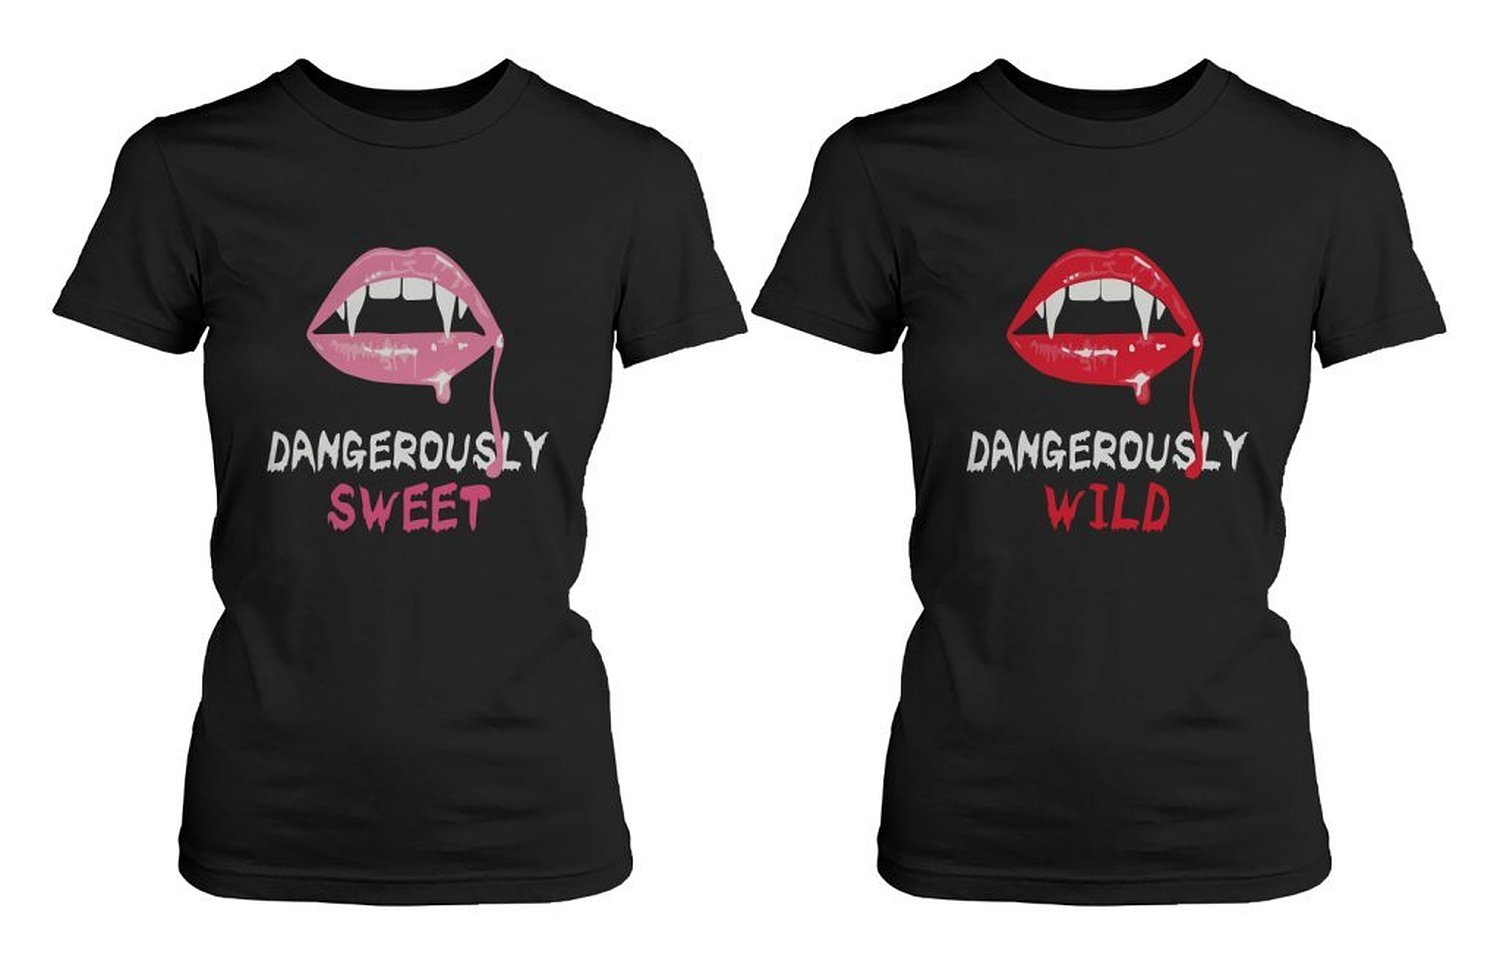 Amazon.com: Best Friend Shirts - Dangerously Sweet and Wild Best Friends Matching BFF Black Shirts: Clothing